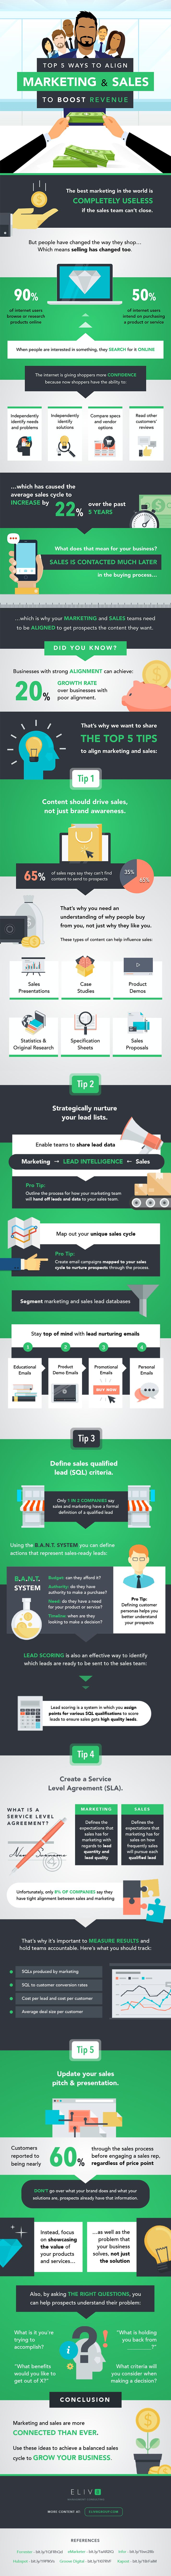 How-To Align Marketing & Sales to Boost Revenue #Infographic #infografía